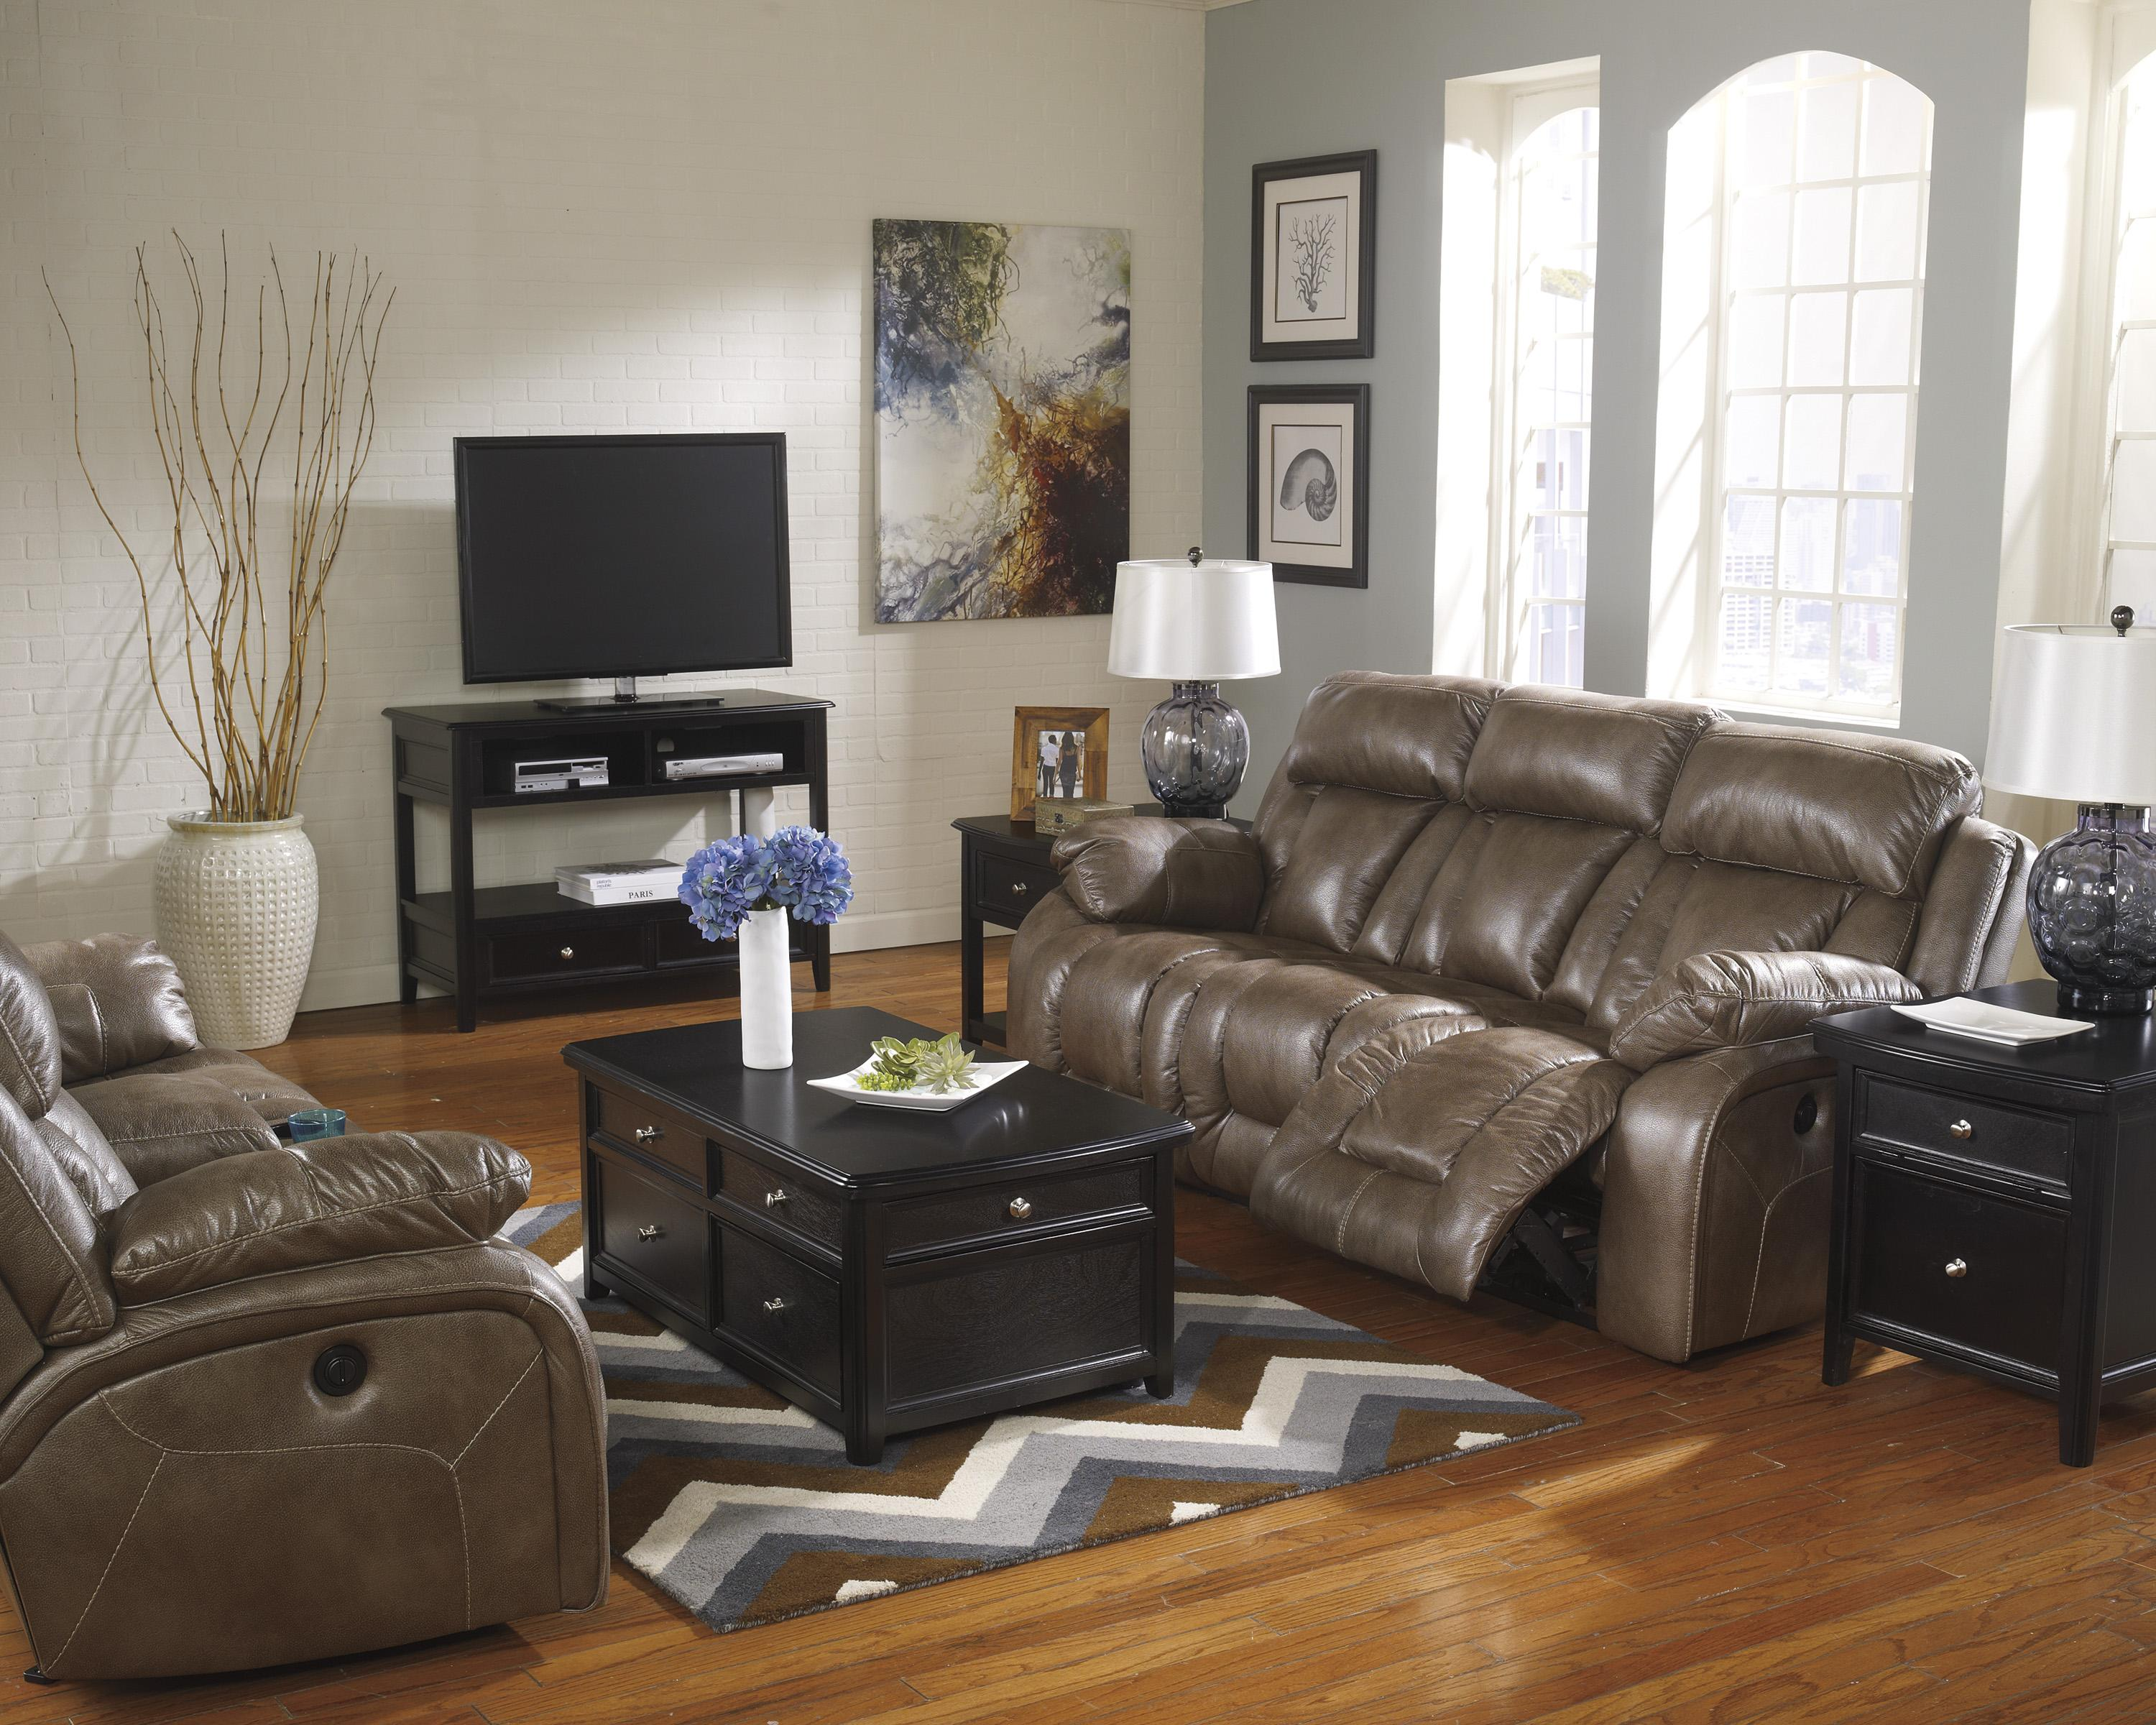 Cool ashley furniture columbus ga for living room ideas with ashley furniture columbus ohio